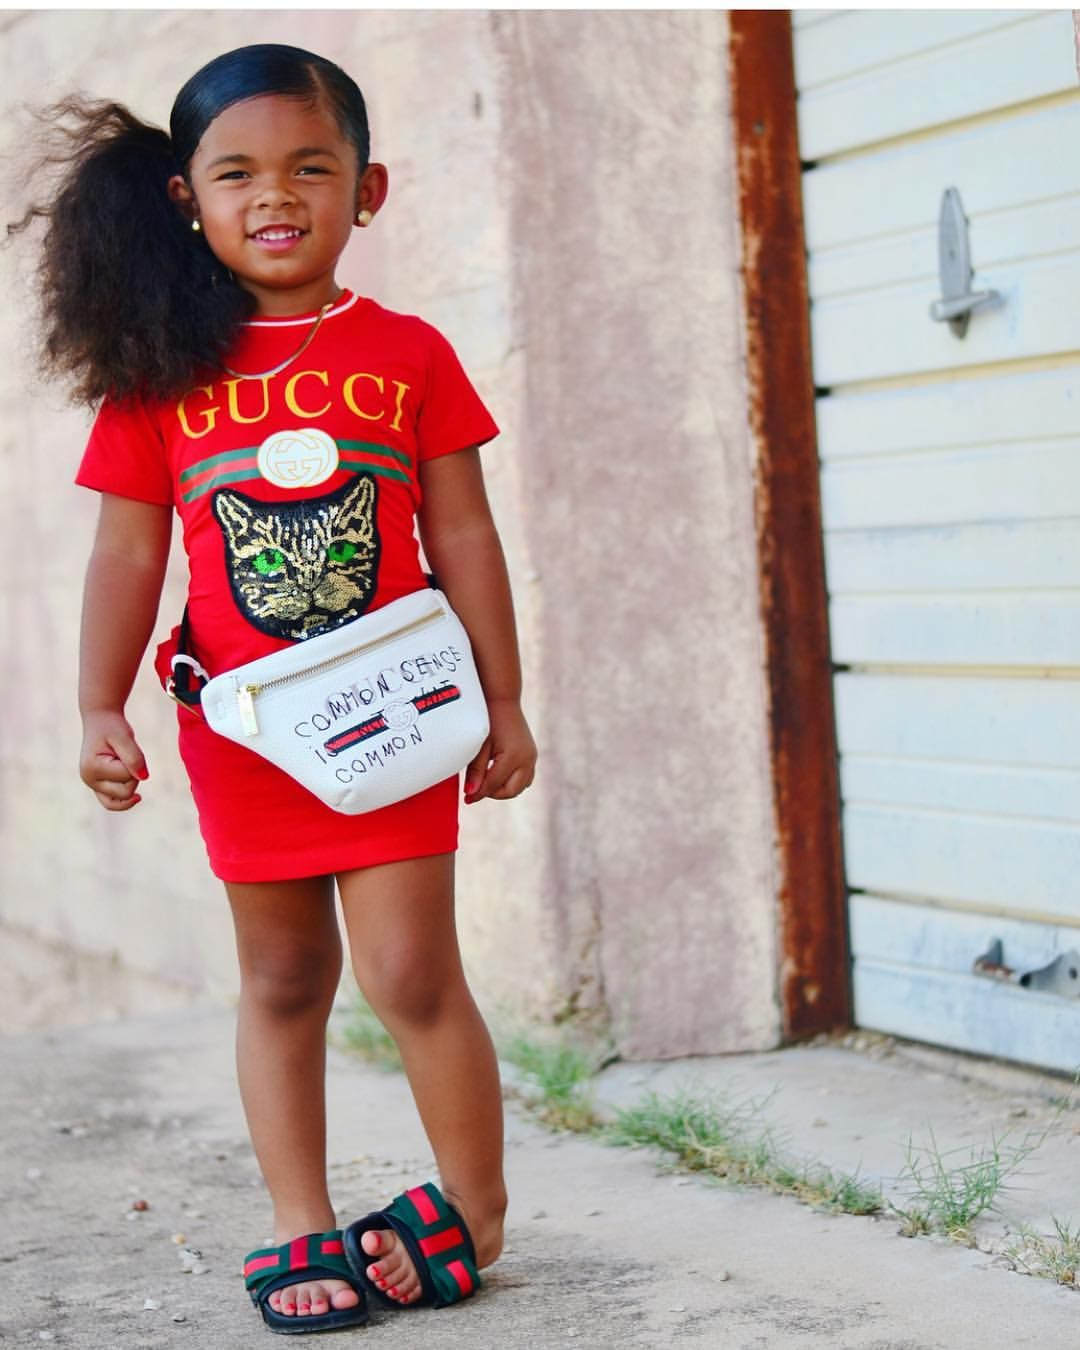 Gucci Babe Gucci Kynlee Kat Trendy Stylish Fashion Instafashion Kidsstylishoutf Stylish Kids Outfits Kids Outfits Daughters Cute Little Girls Outfits